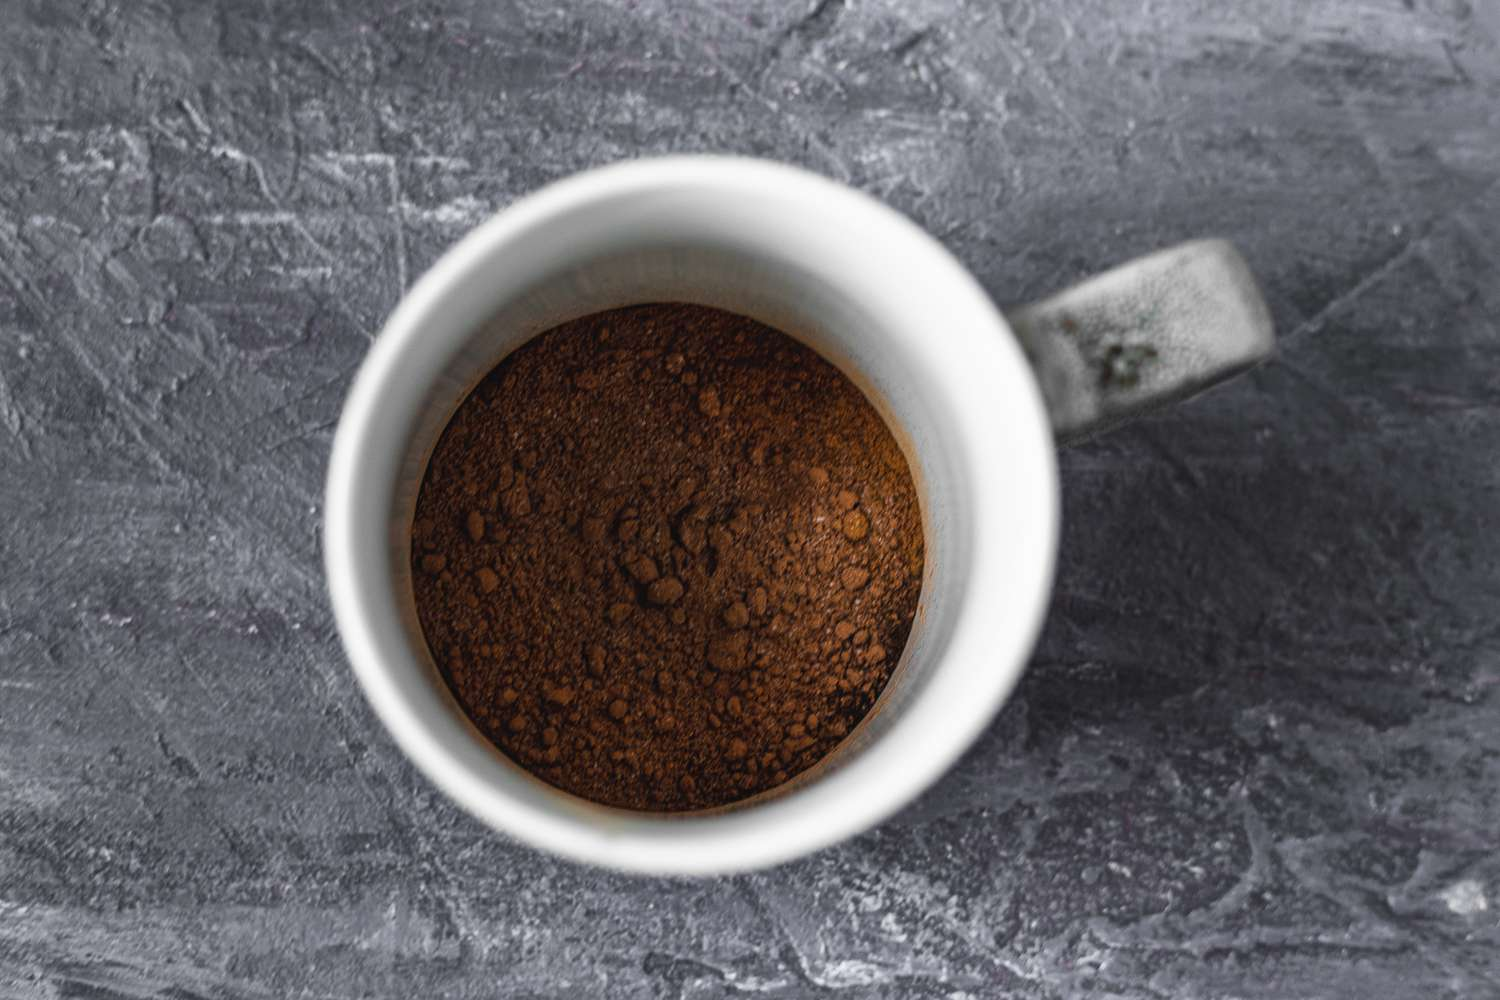 cocoa and instant coffee mixed together in a mug